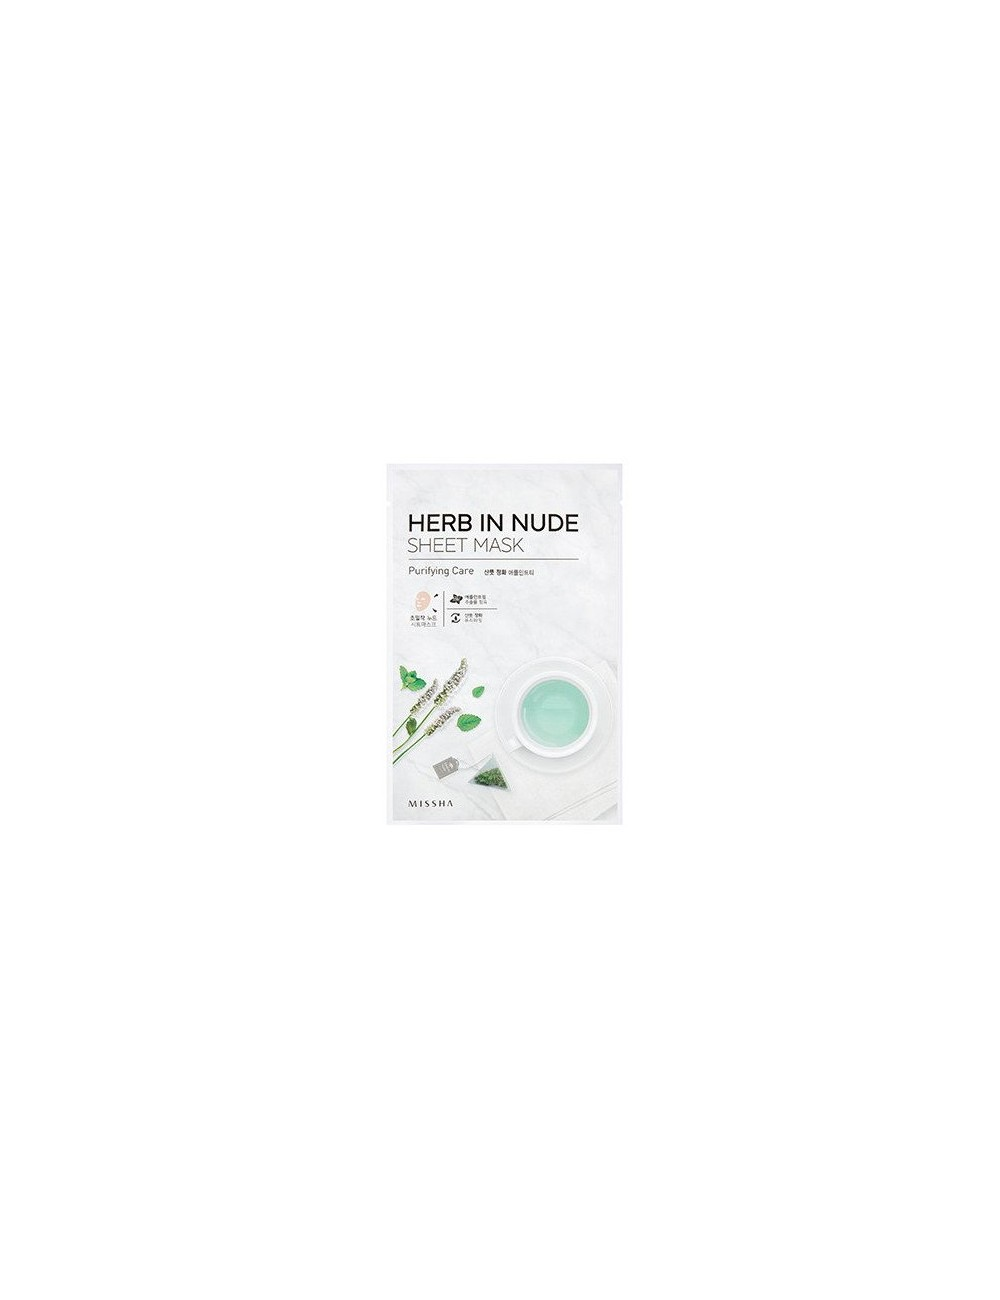 Mascarilla Purificante Herb In Nude Sheet Mask (Purifying Care)